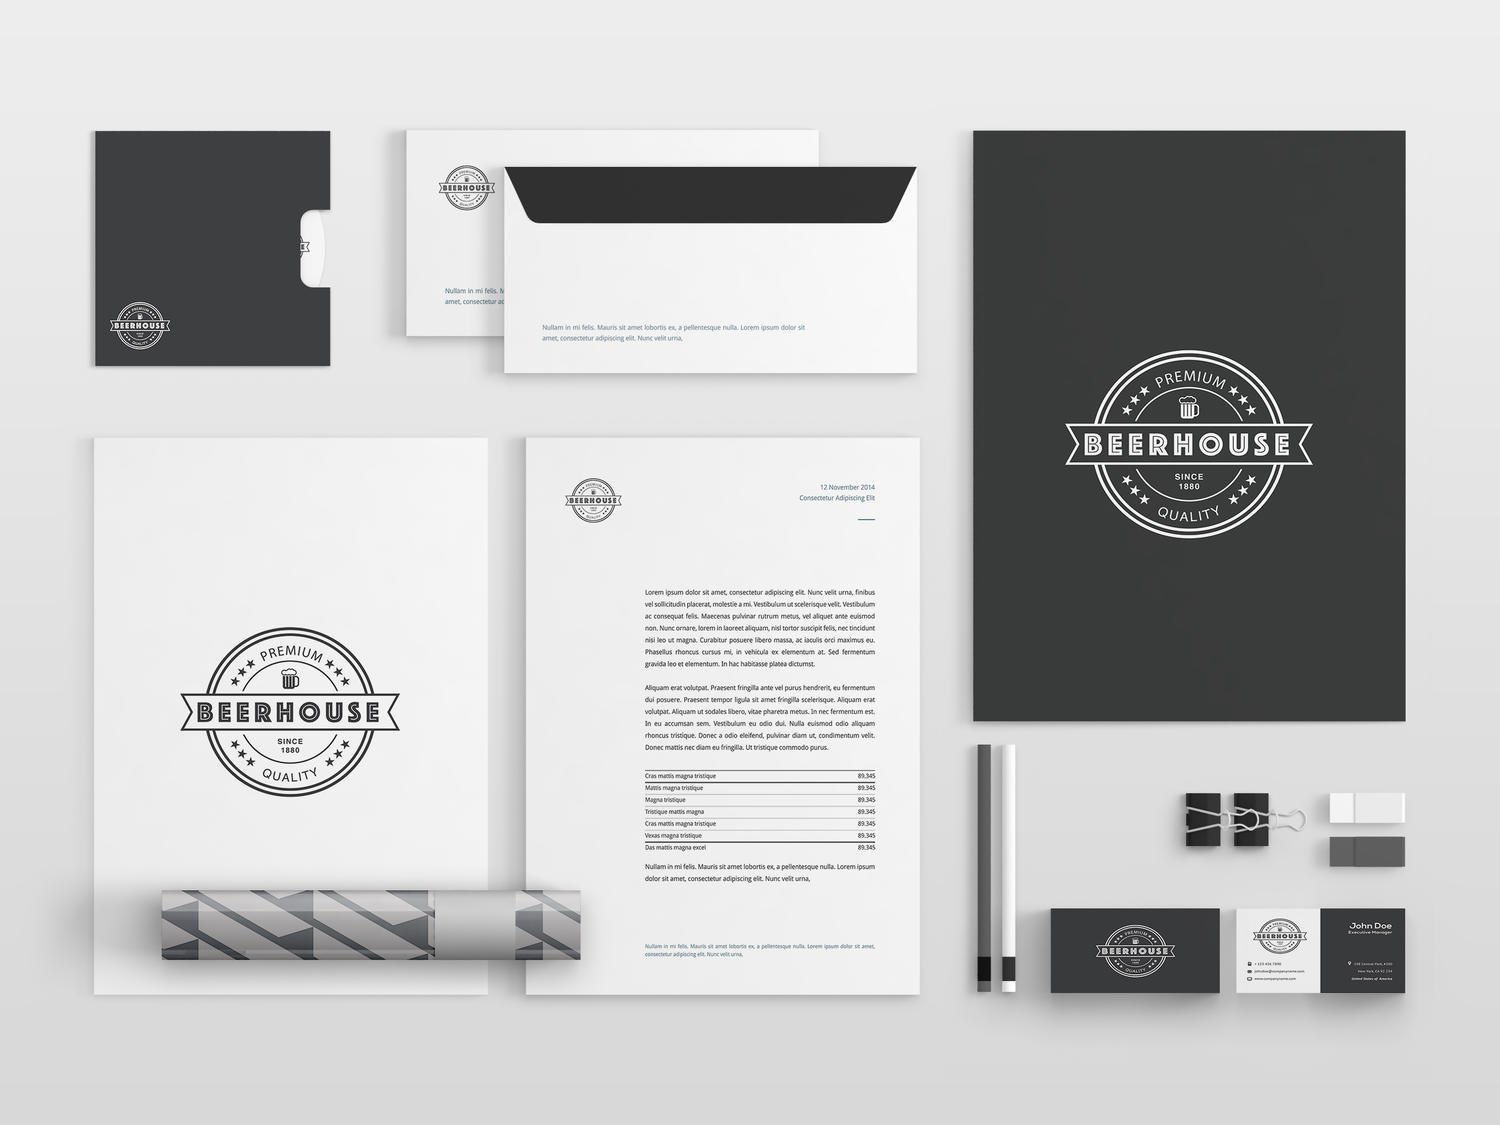 Professional Corporate Identity & Stationery Design by carlos_fernando - 92732